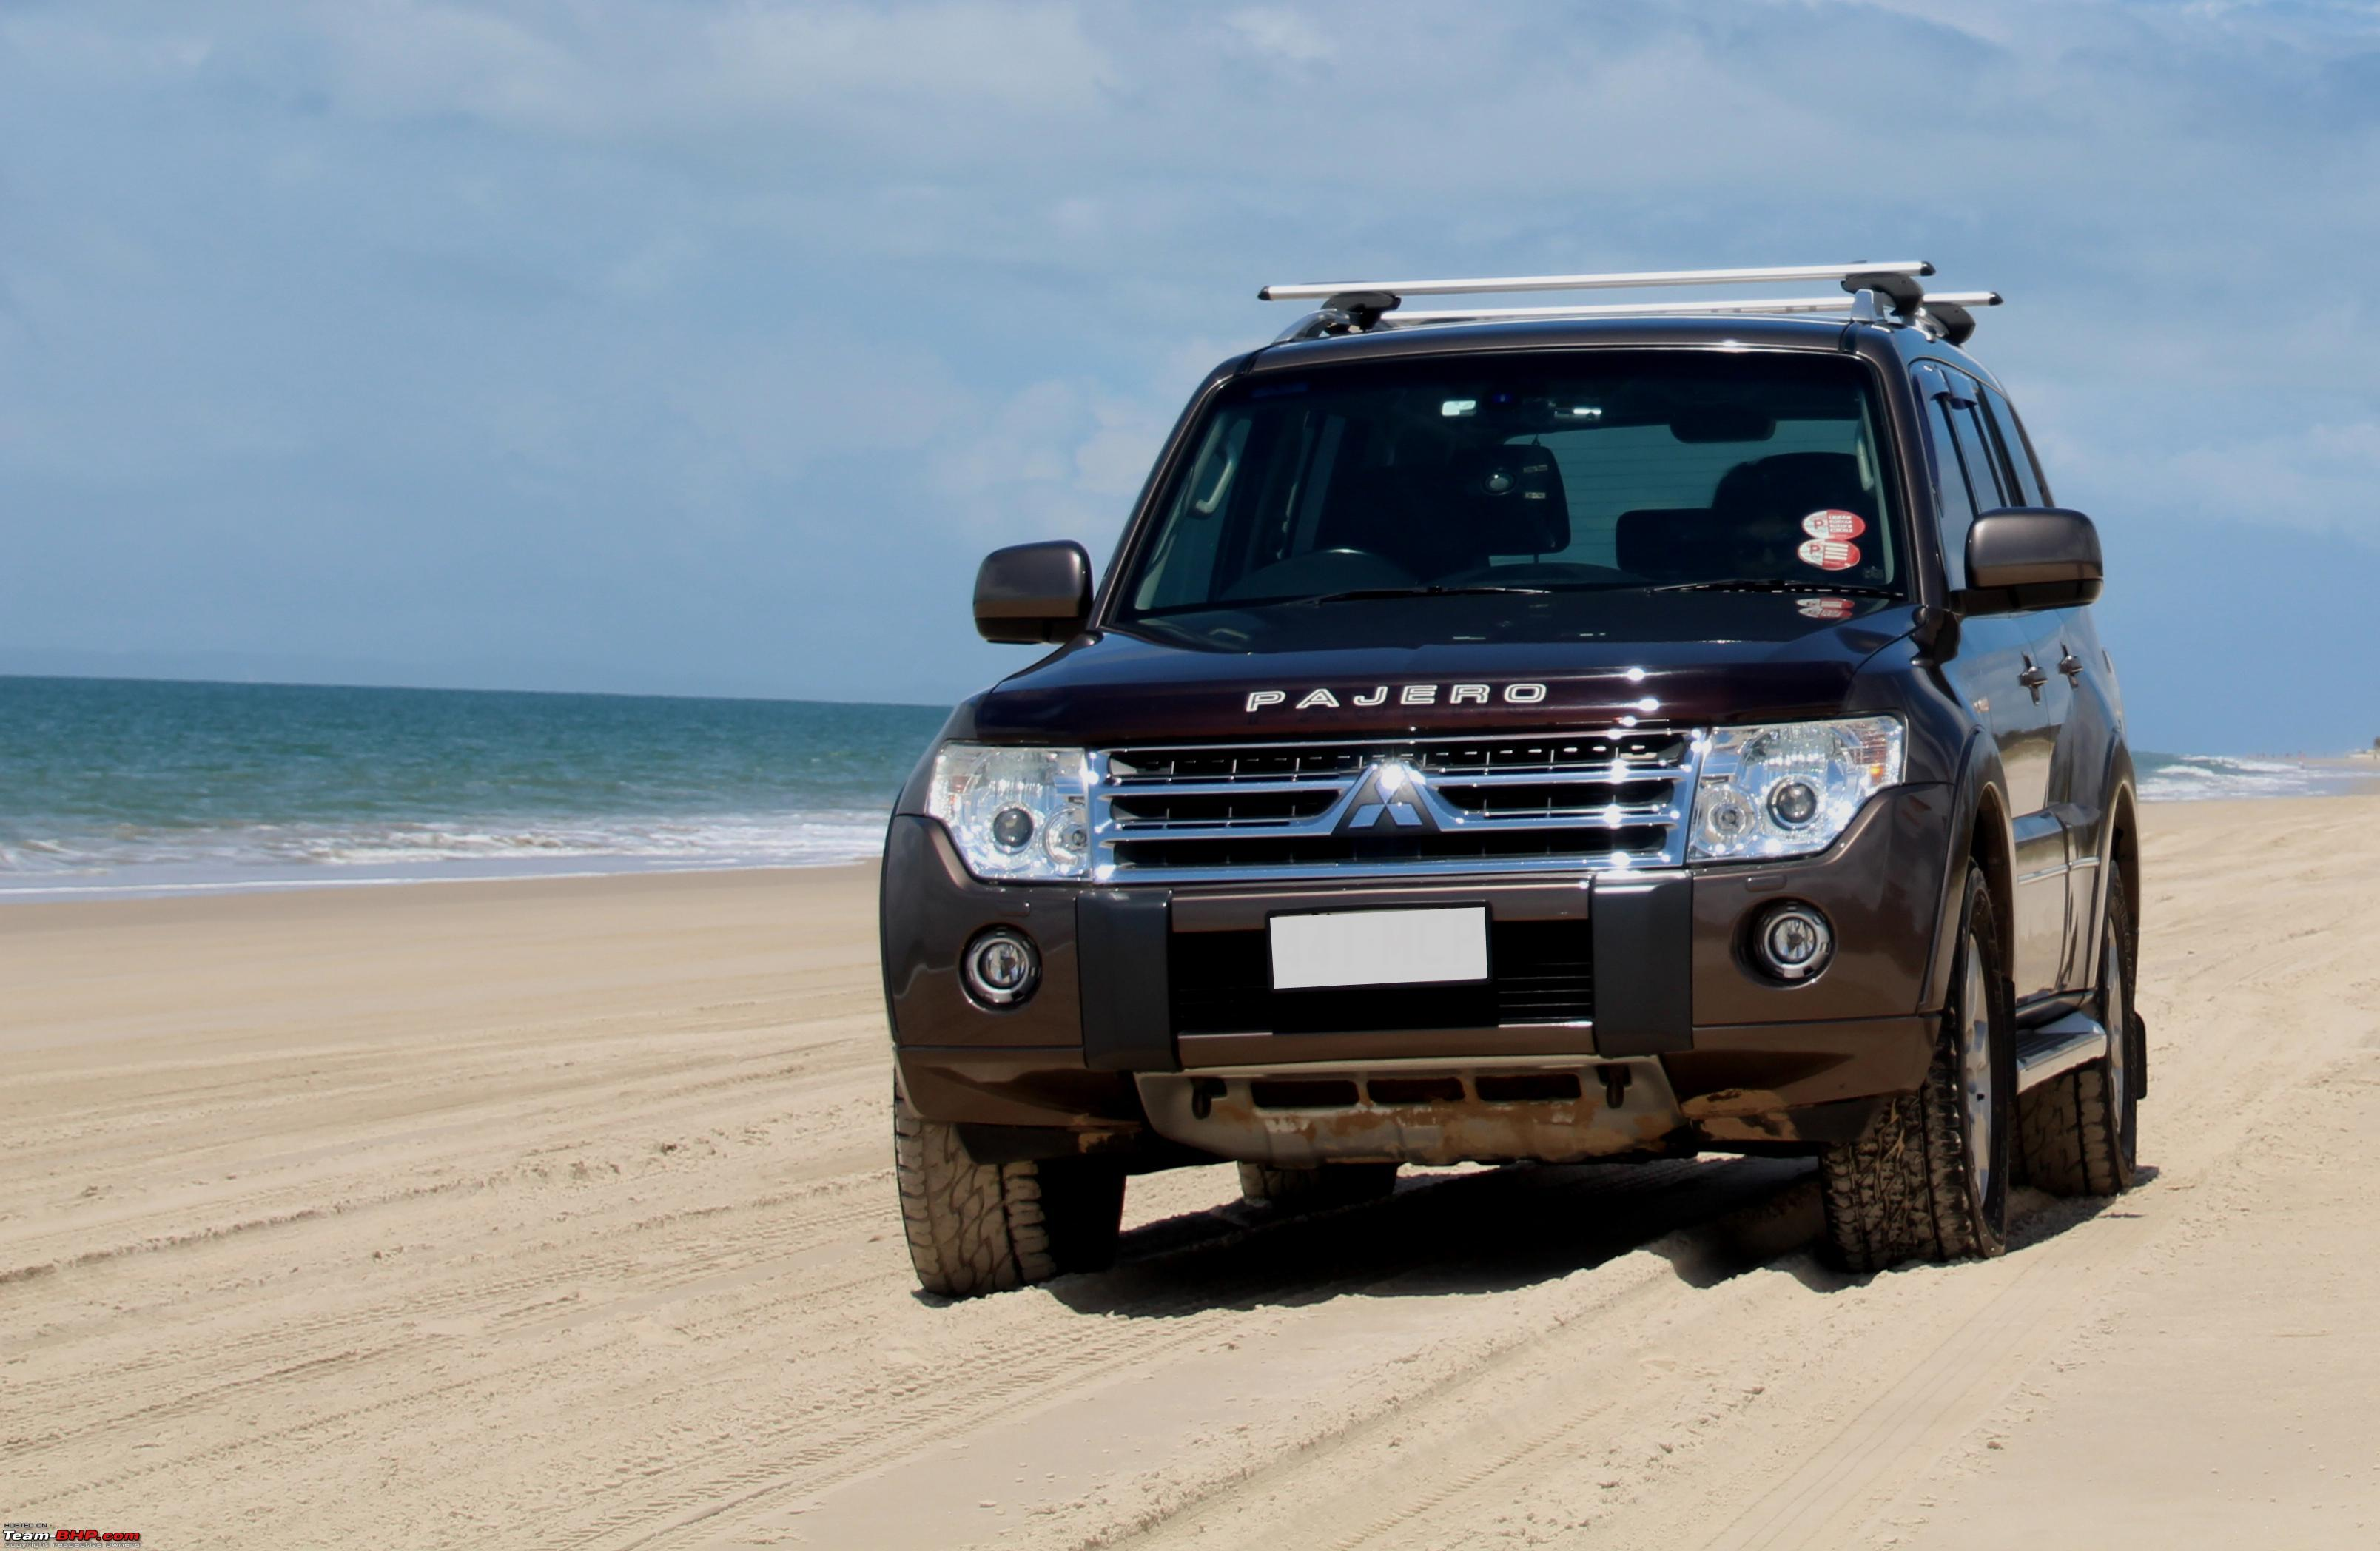 legendary mitsubishi pajero to go out of production in